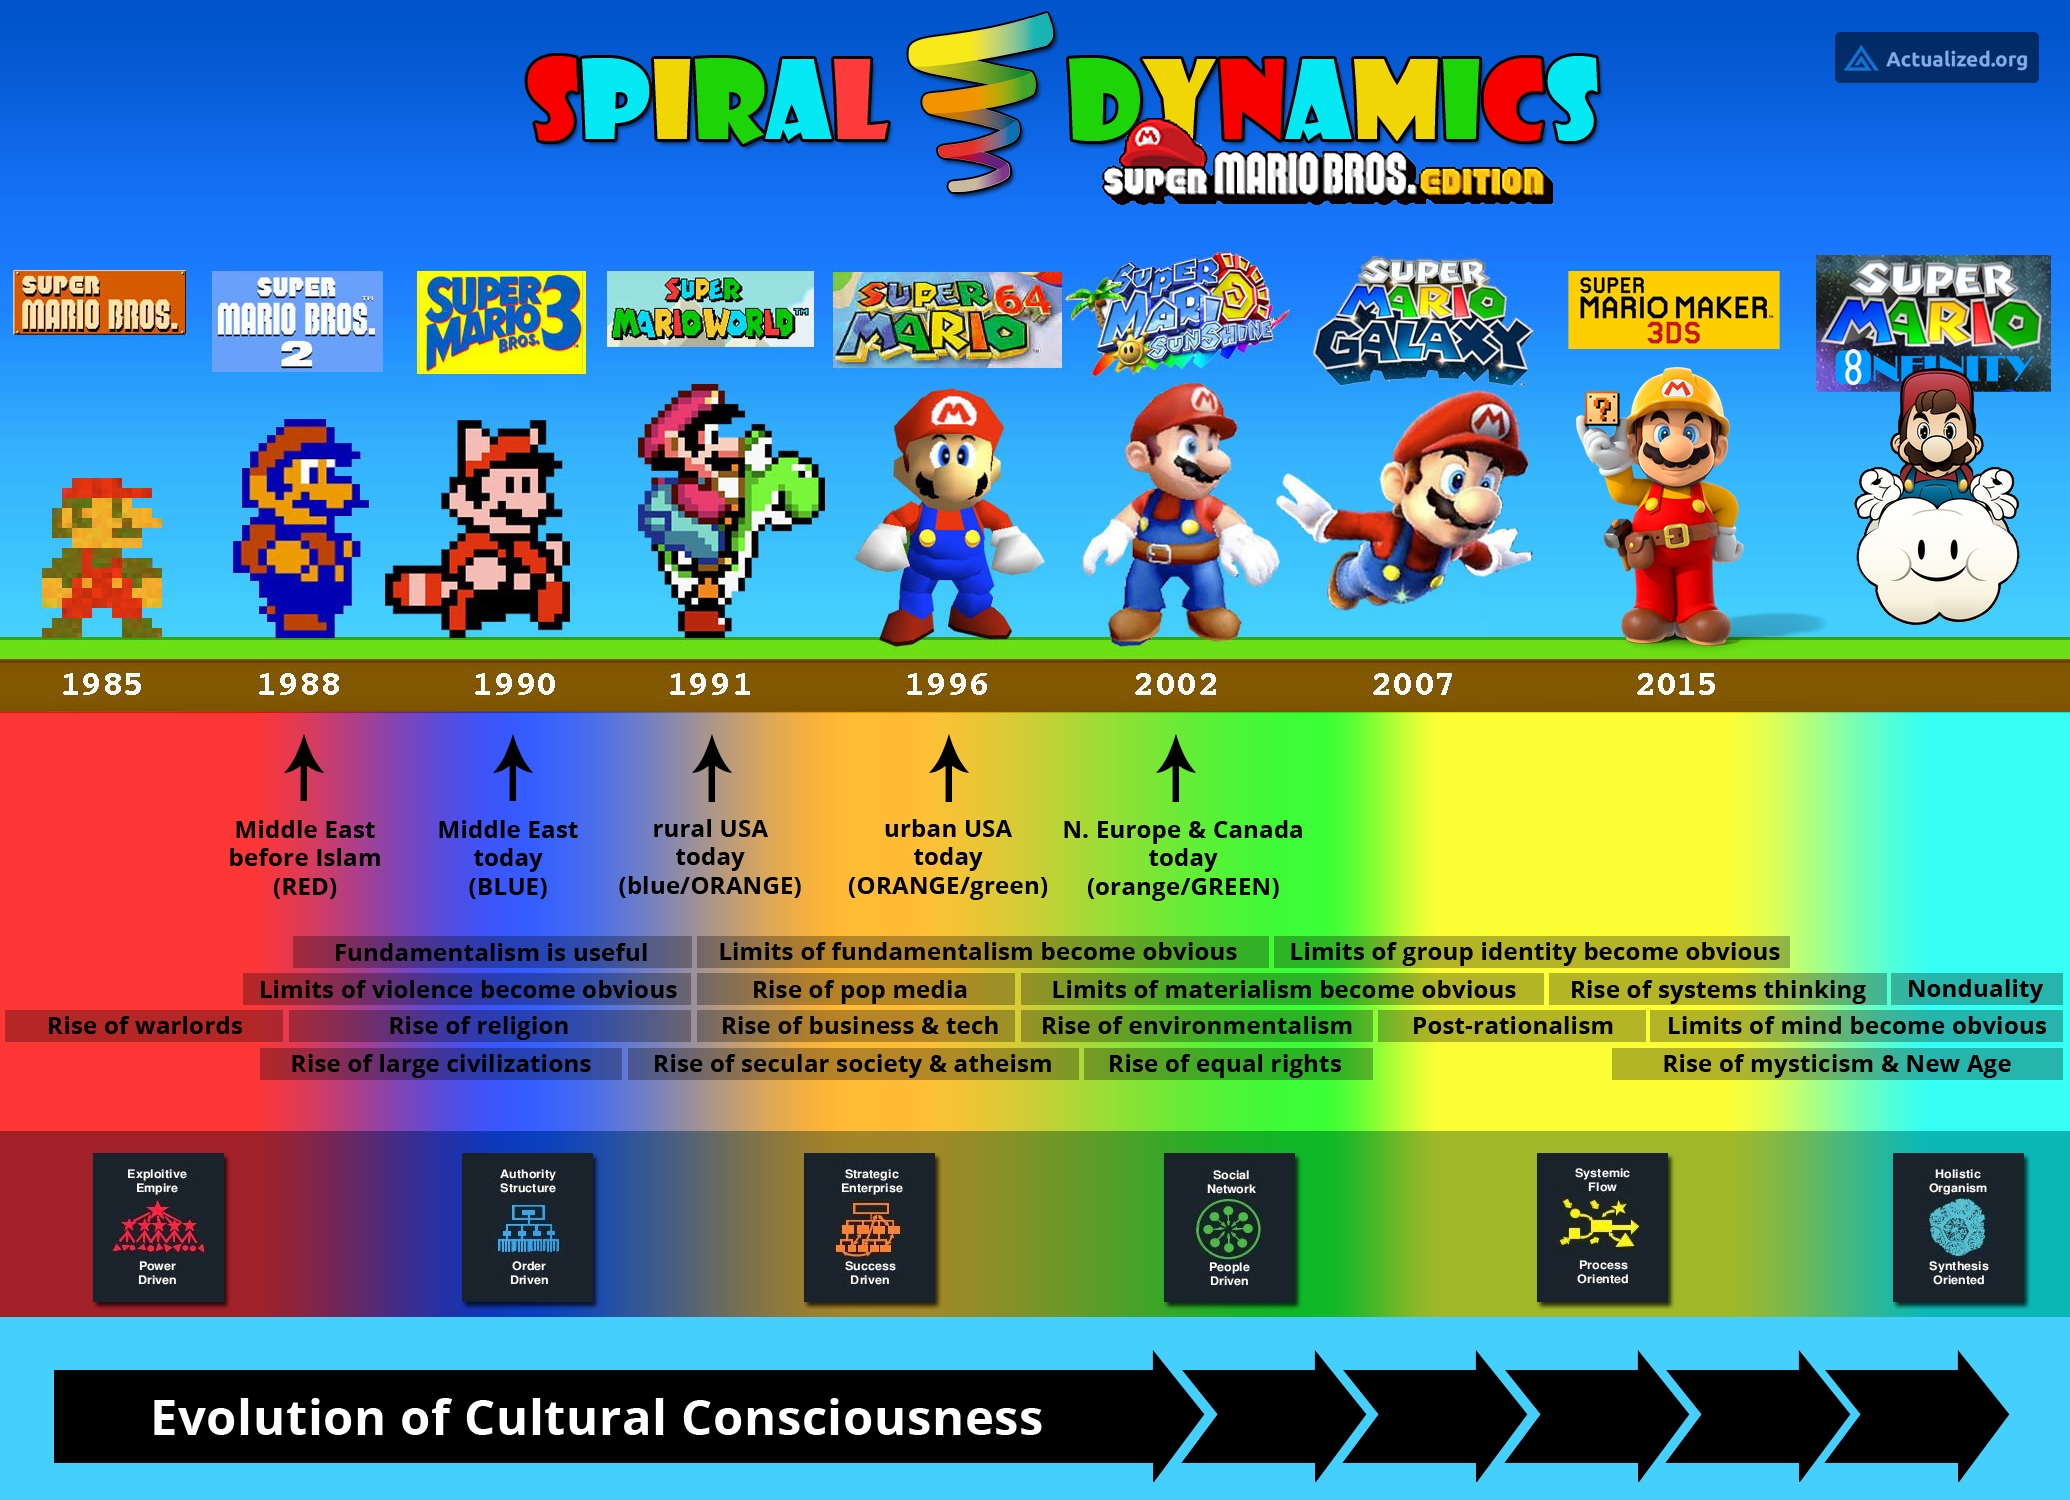 spiral-dynamics-super-mario-edition-01